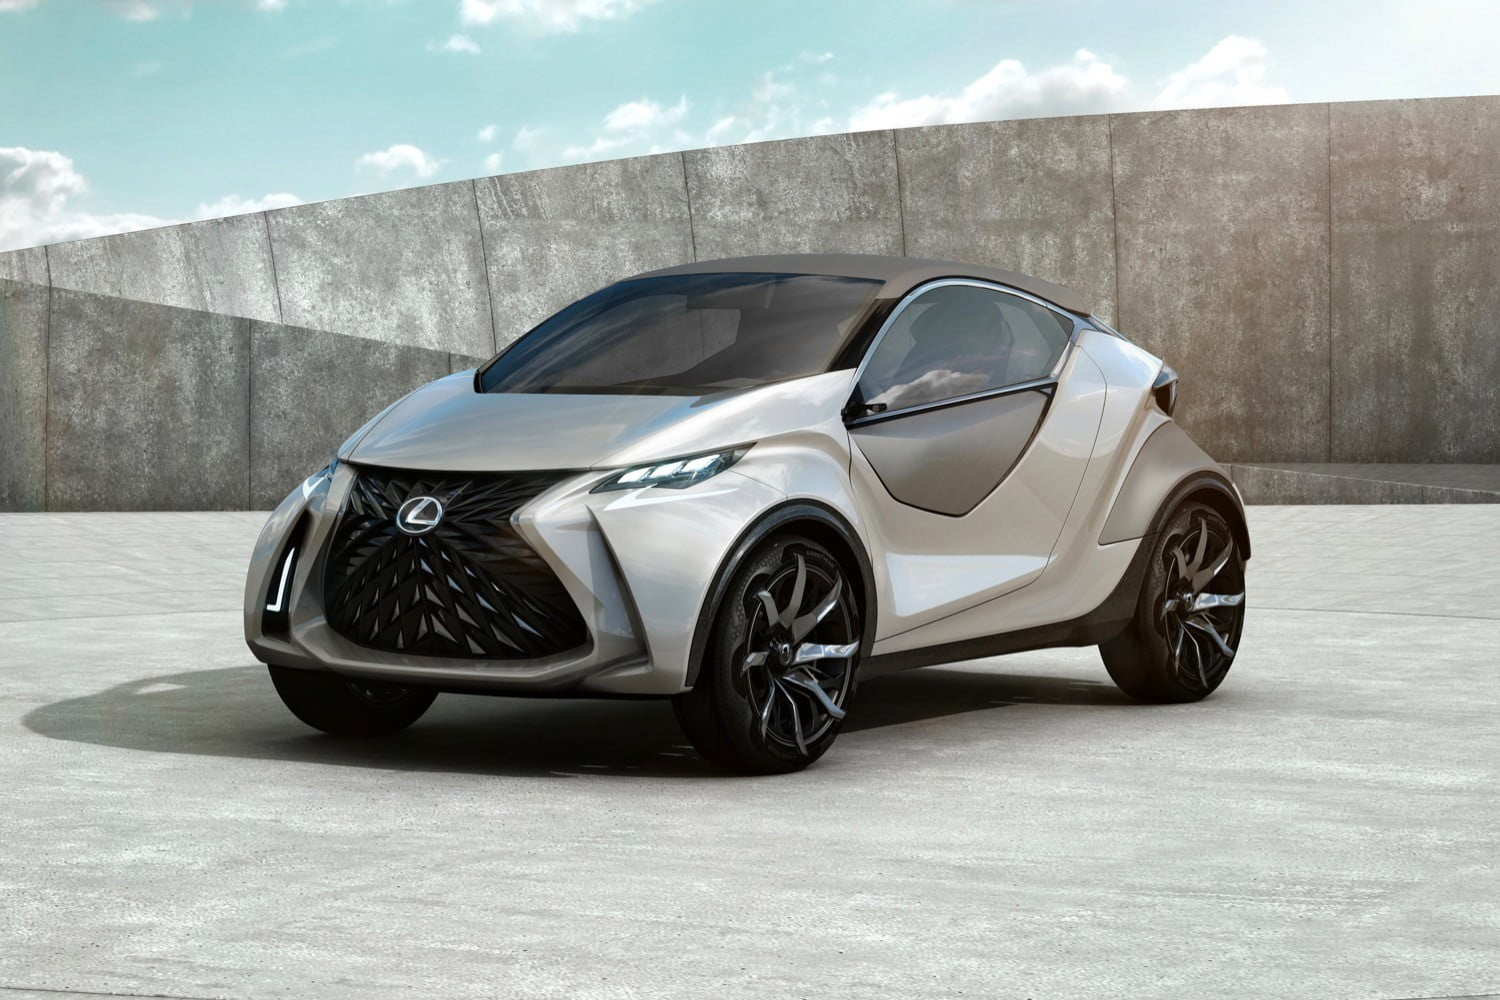 The first fully electric Lexus production car may not go